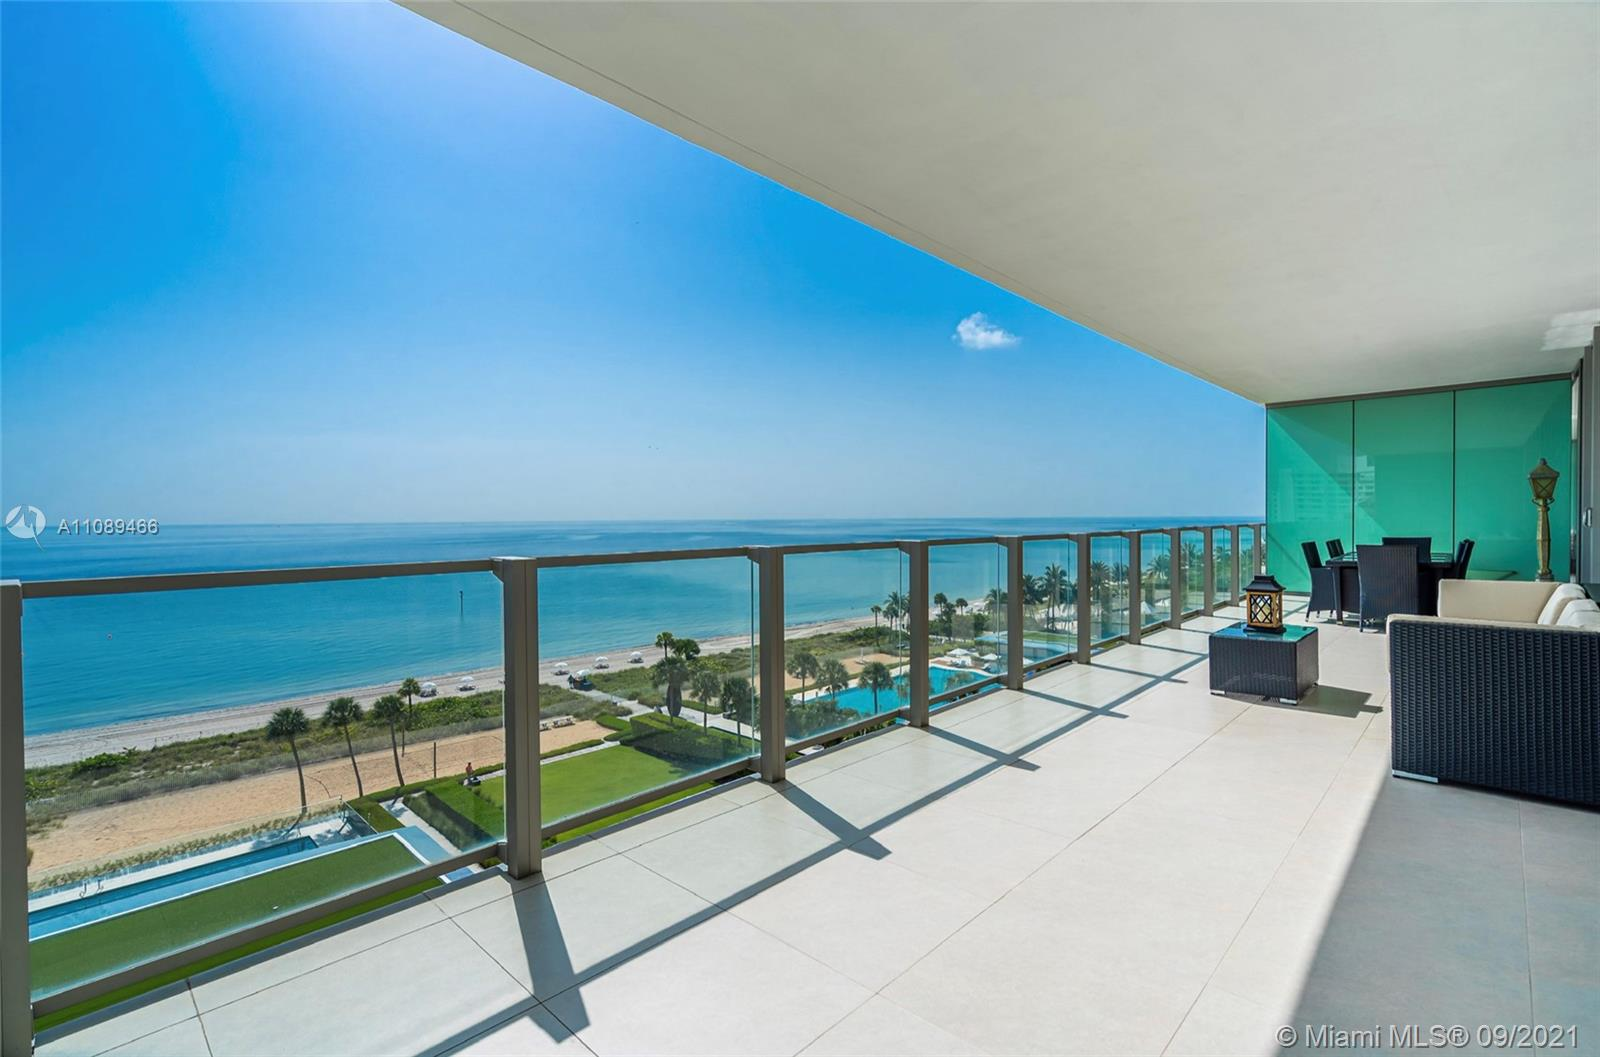 Gorgeous, finely finished flow-through unit at the exclusive Beachfront Oceana in Key Biscayne! Private elevator leads you into this spectacular 3B + Maid's quarters and 4.5Bath unit. Floor-to-ceiling windows and expansive terraces throughout encompass beautiful direct East and West views. 36x36 white stone floor in living areas and hardwood floors in bedrooms. 3 PARKING SPACES AND 1 STORAGE SPACE. This luxurious modern style building offers 2 pools, Tennis court, gym and spa, kids room, party room, Al-fresco Restaurant and Sand Volleyball on it's 500 ft private beach!